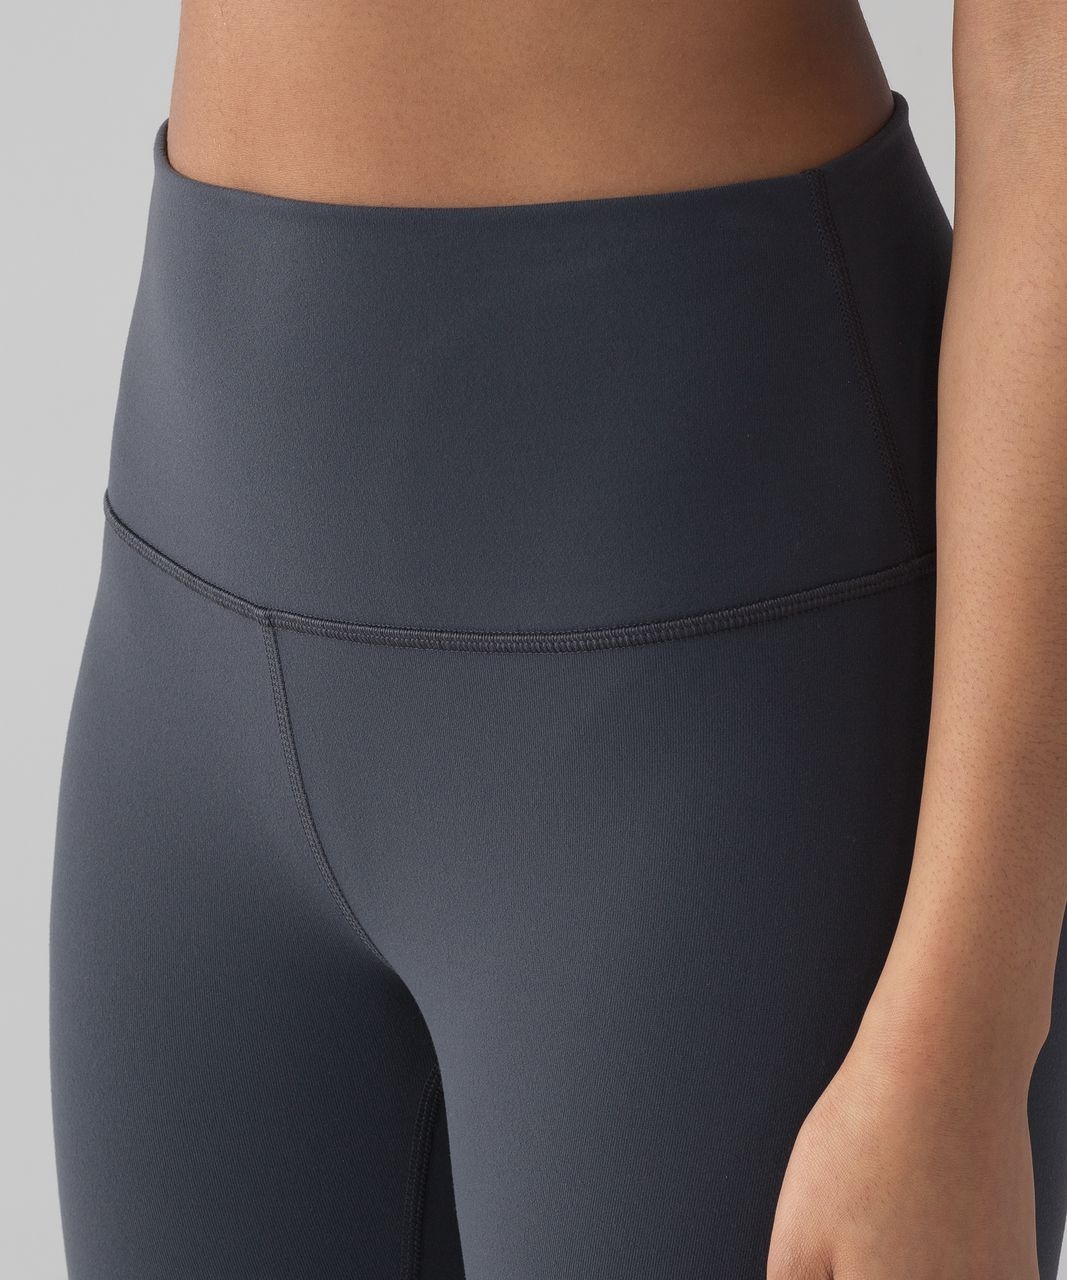 Lululemon Wunder Under Hi-Rise Tight (Full-On Luon) - Blue Tied